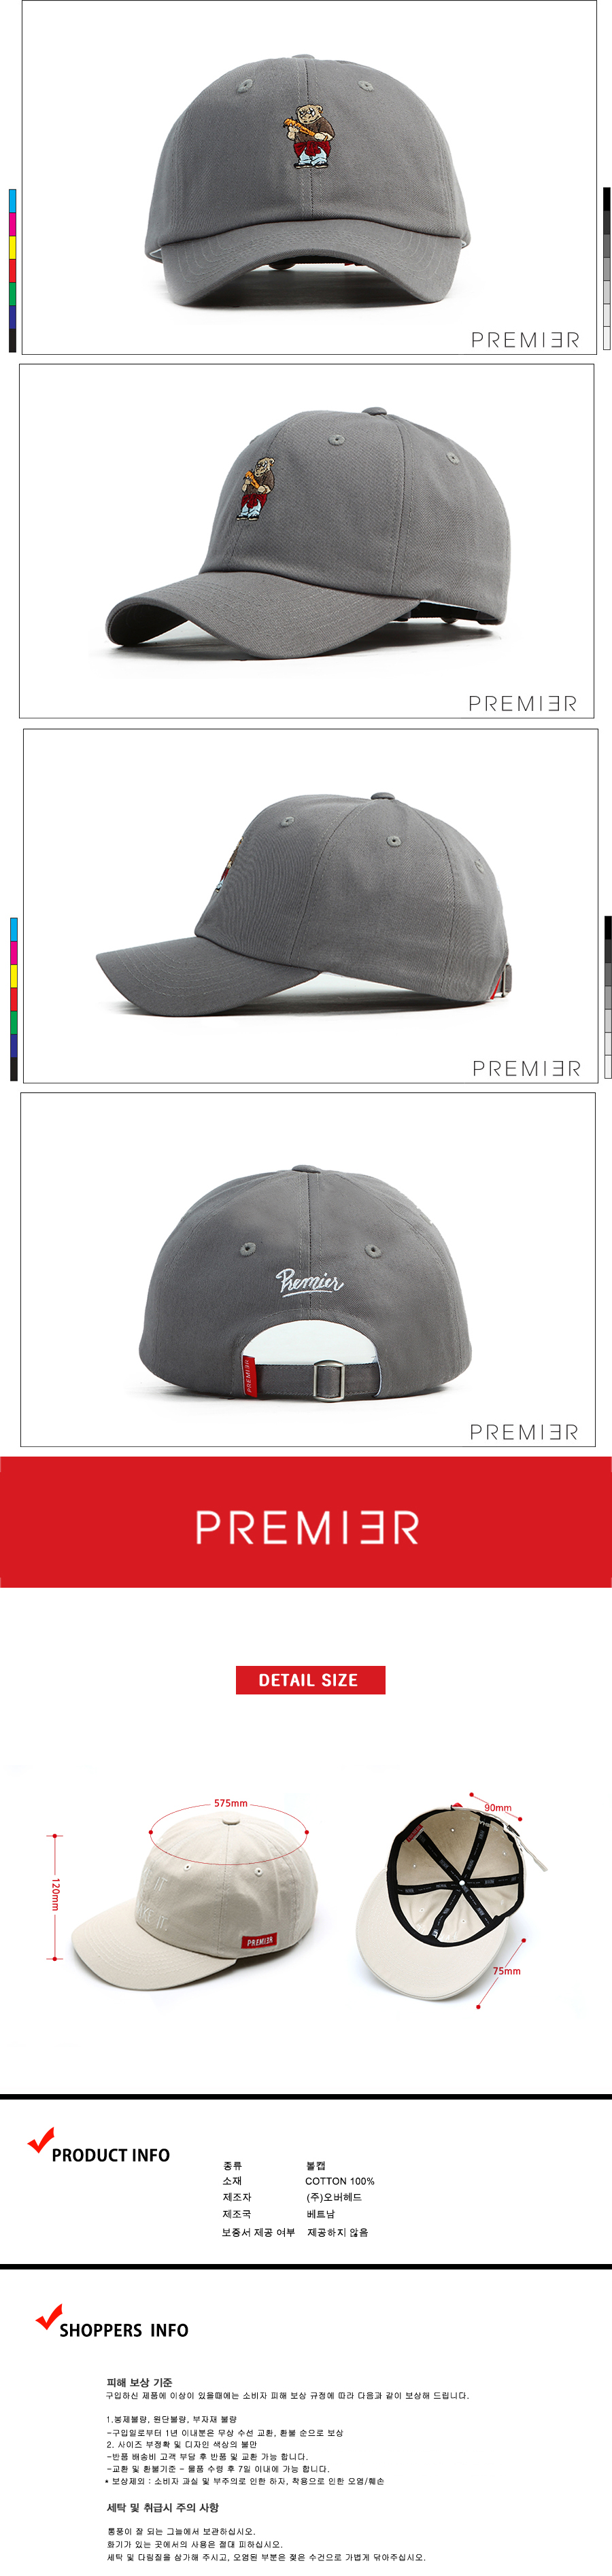 [ PREMIER ] [Premier] Ball Cap Bad Bear Grey (P924)